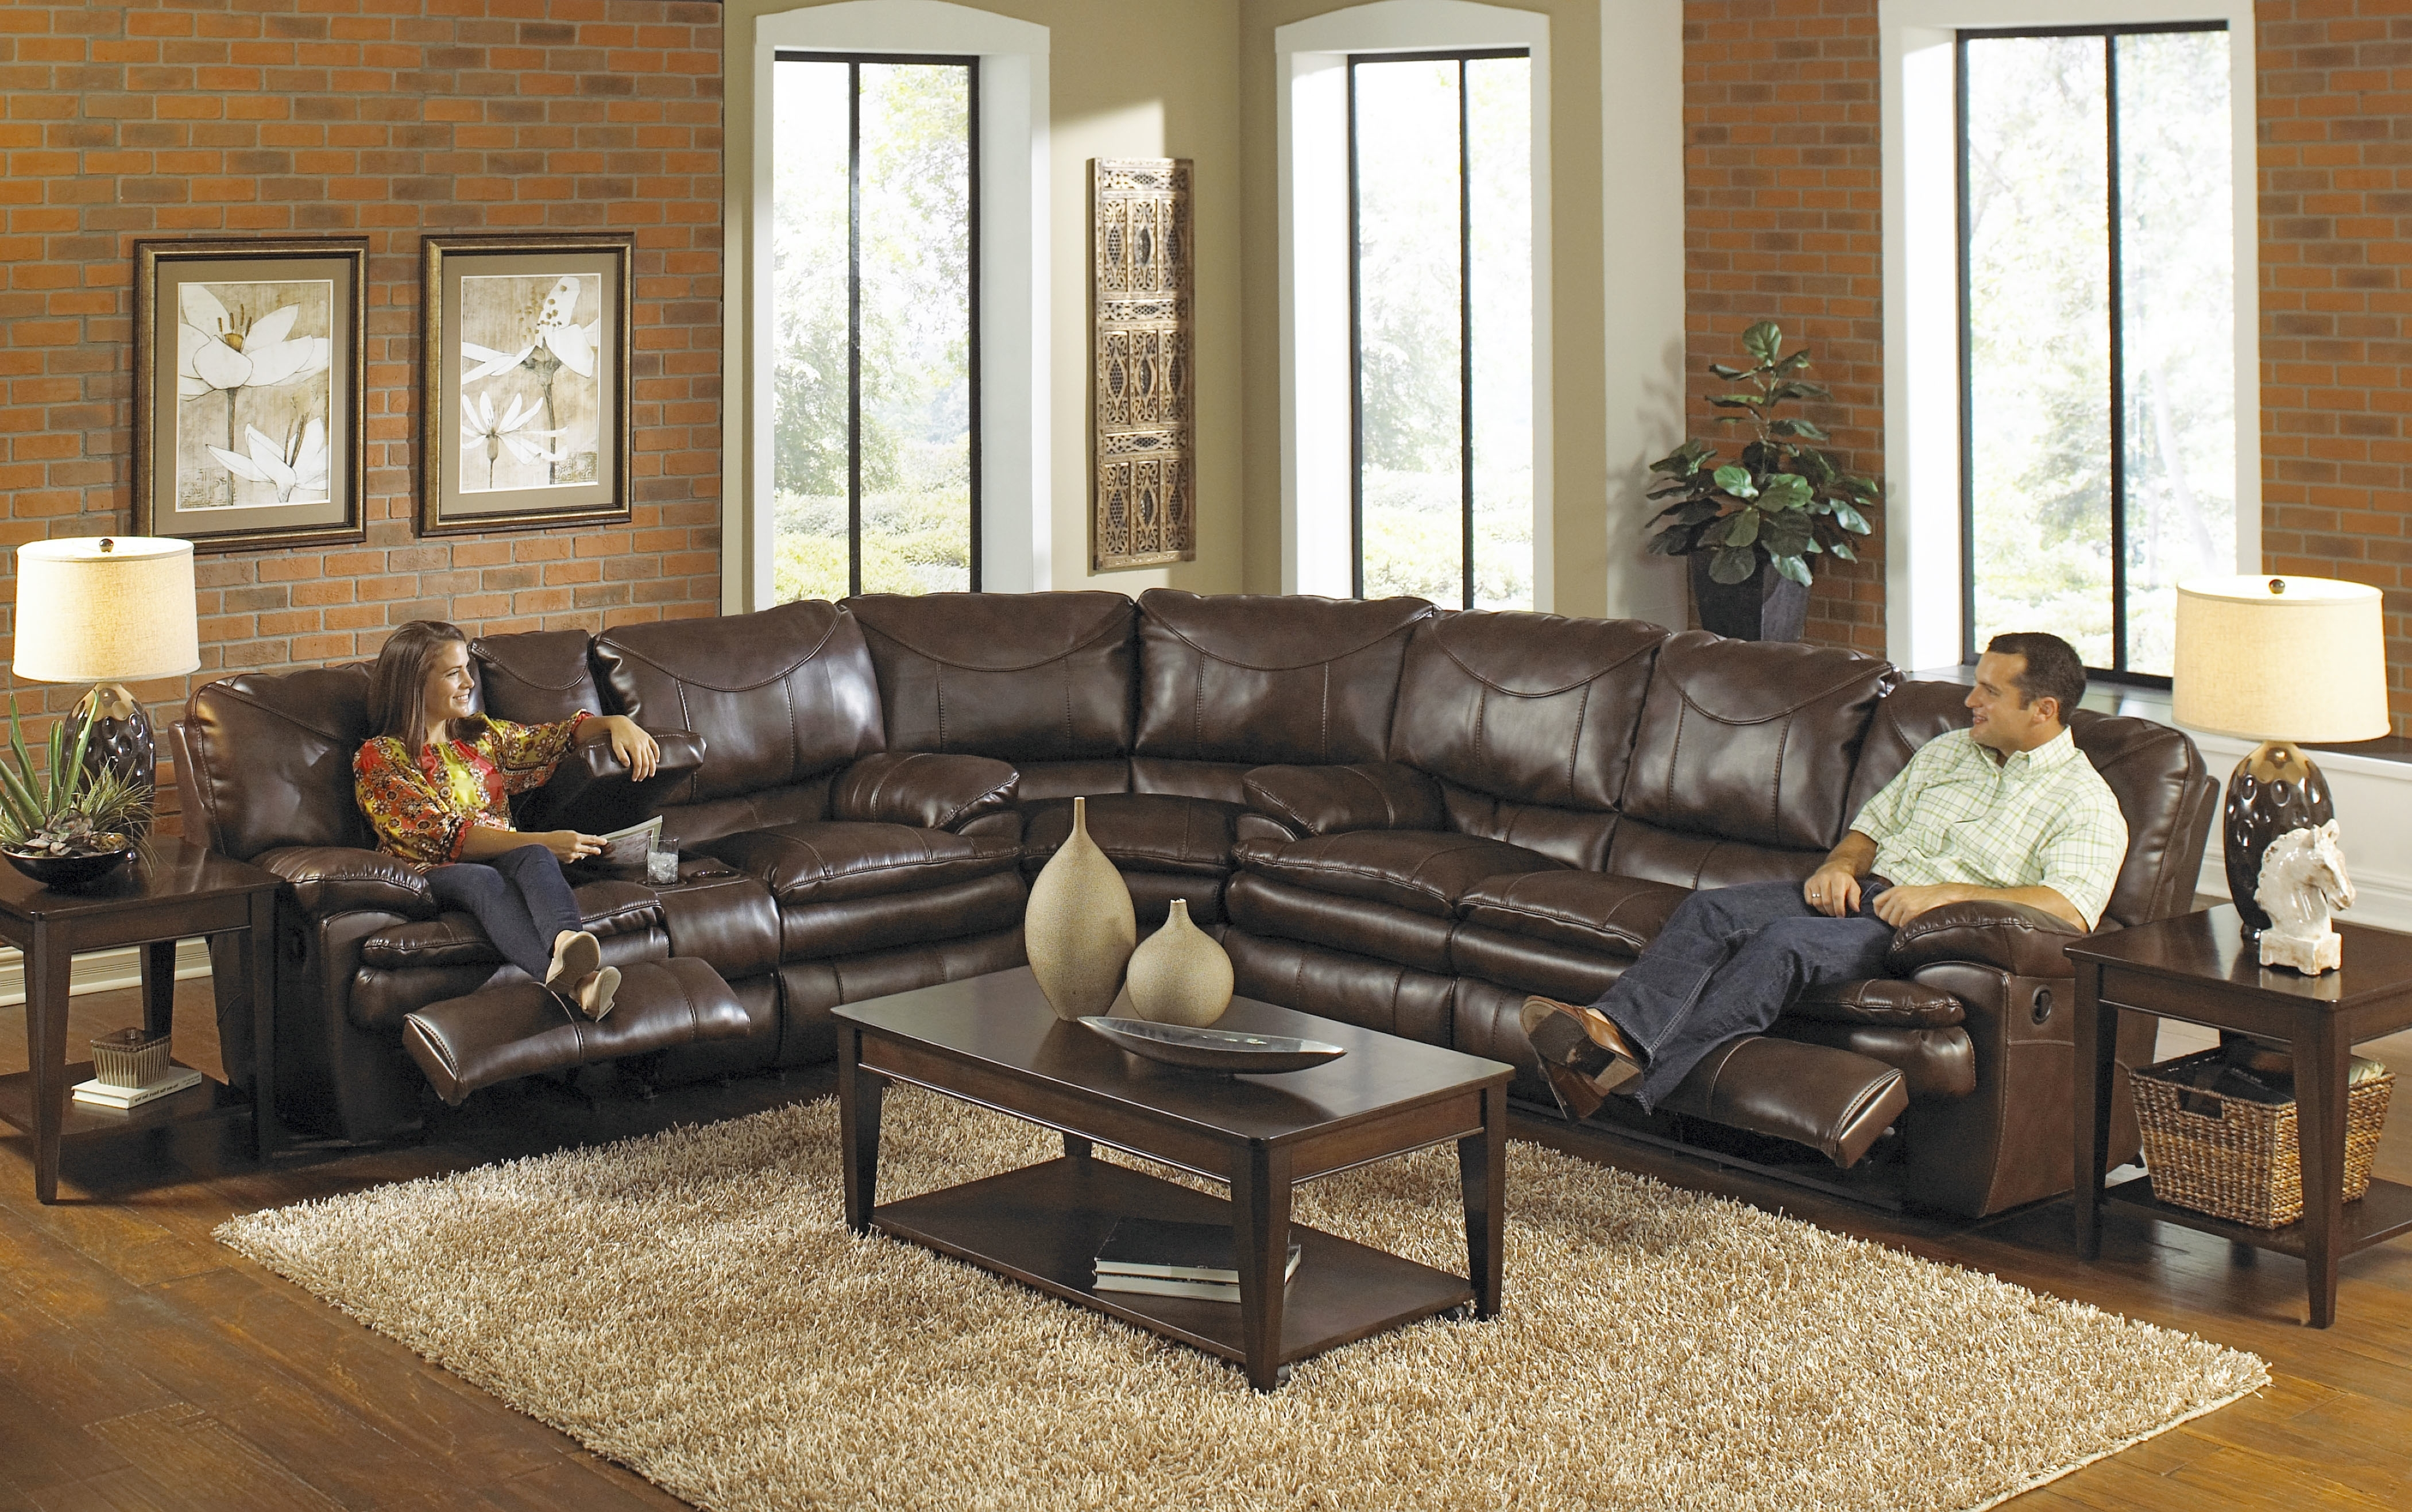 High Quality Leather Sectional Sofas – Radiovannes In Most Recent Good Quality Sectional Sofas (View 16 of 20)